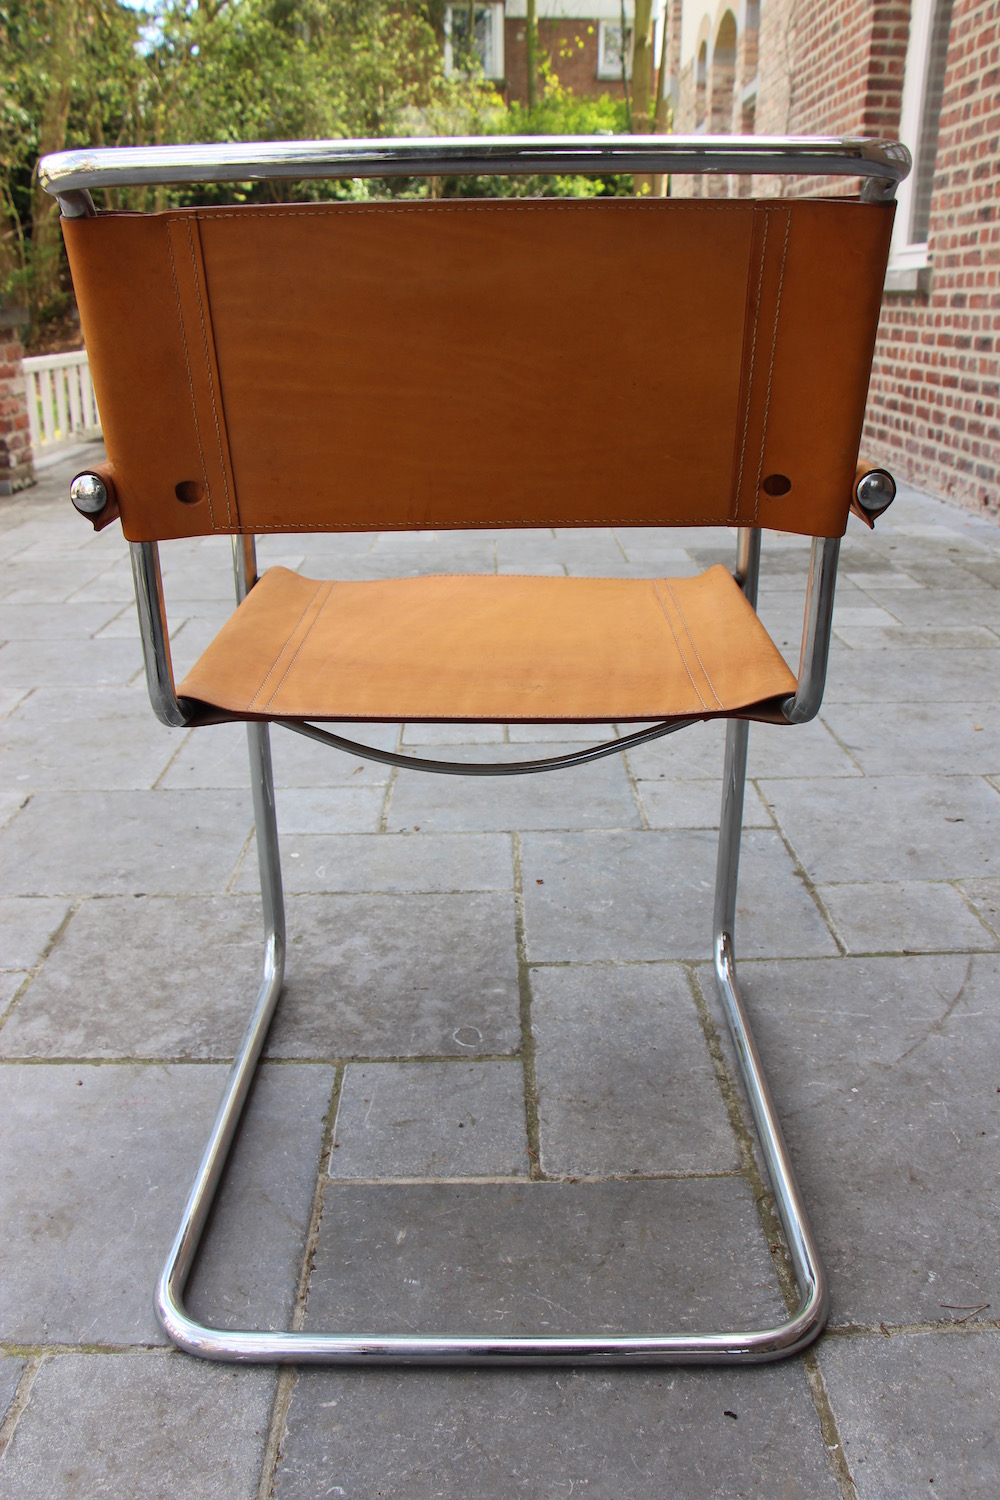 Vintage Mart Stam-style cantilever chairs